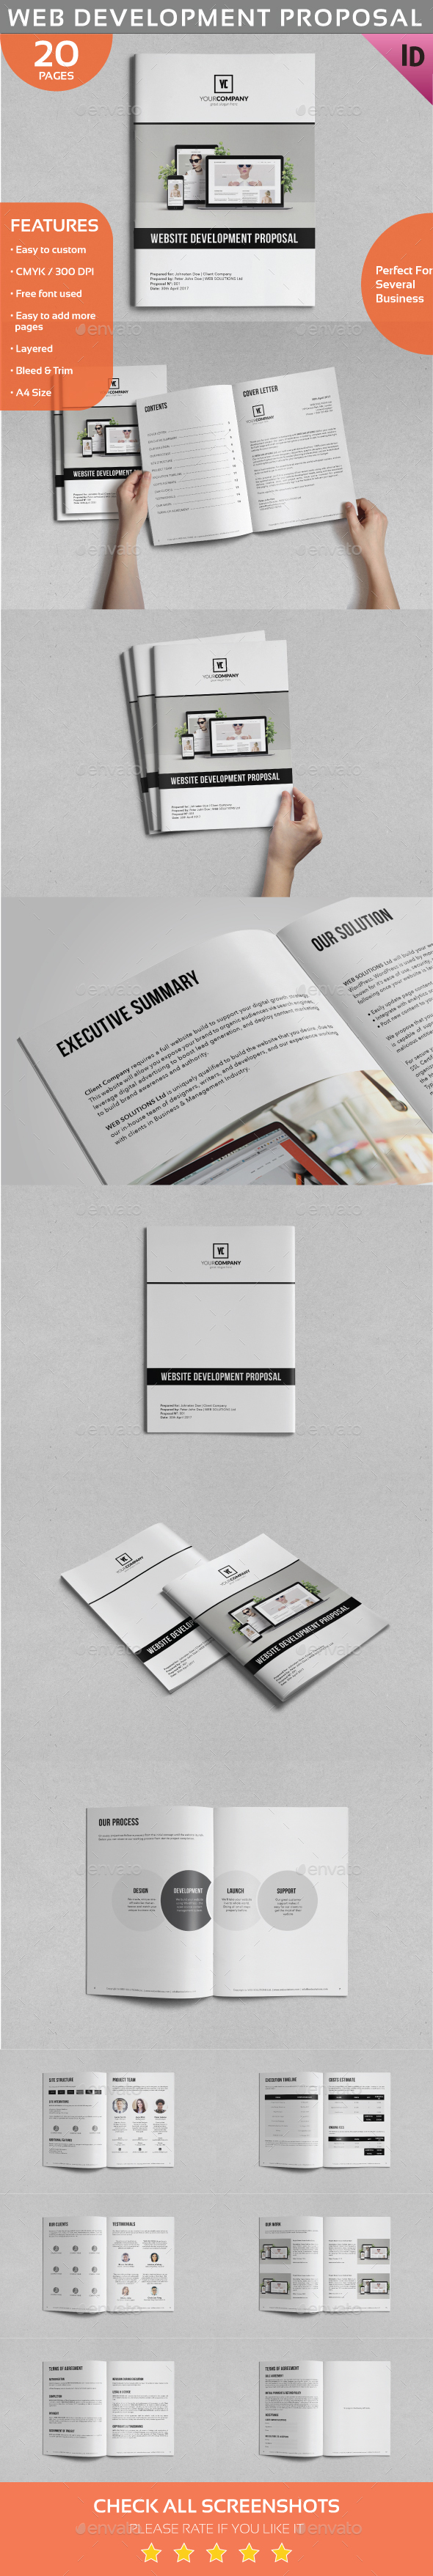 Quotation Graphics, Designs & Templates from GraphicRiver